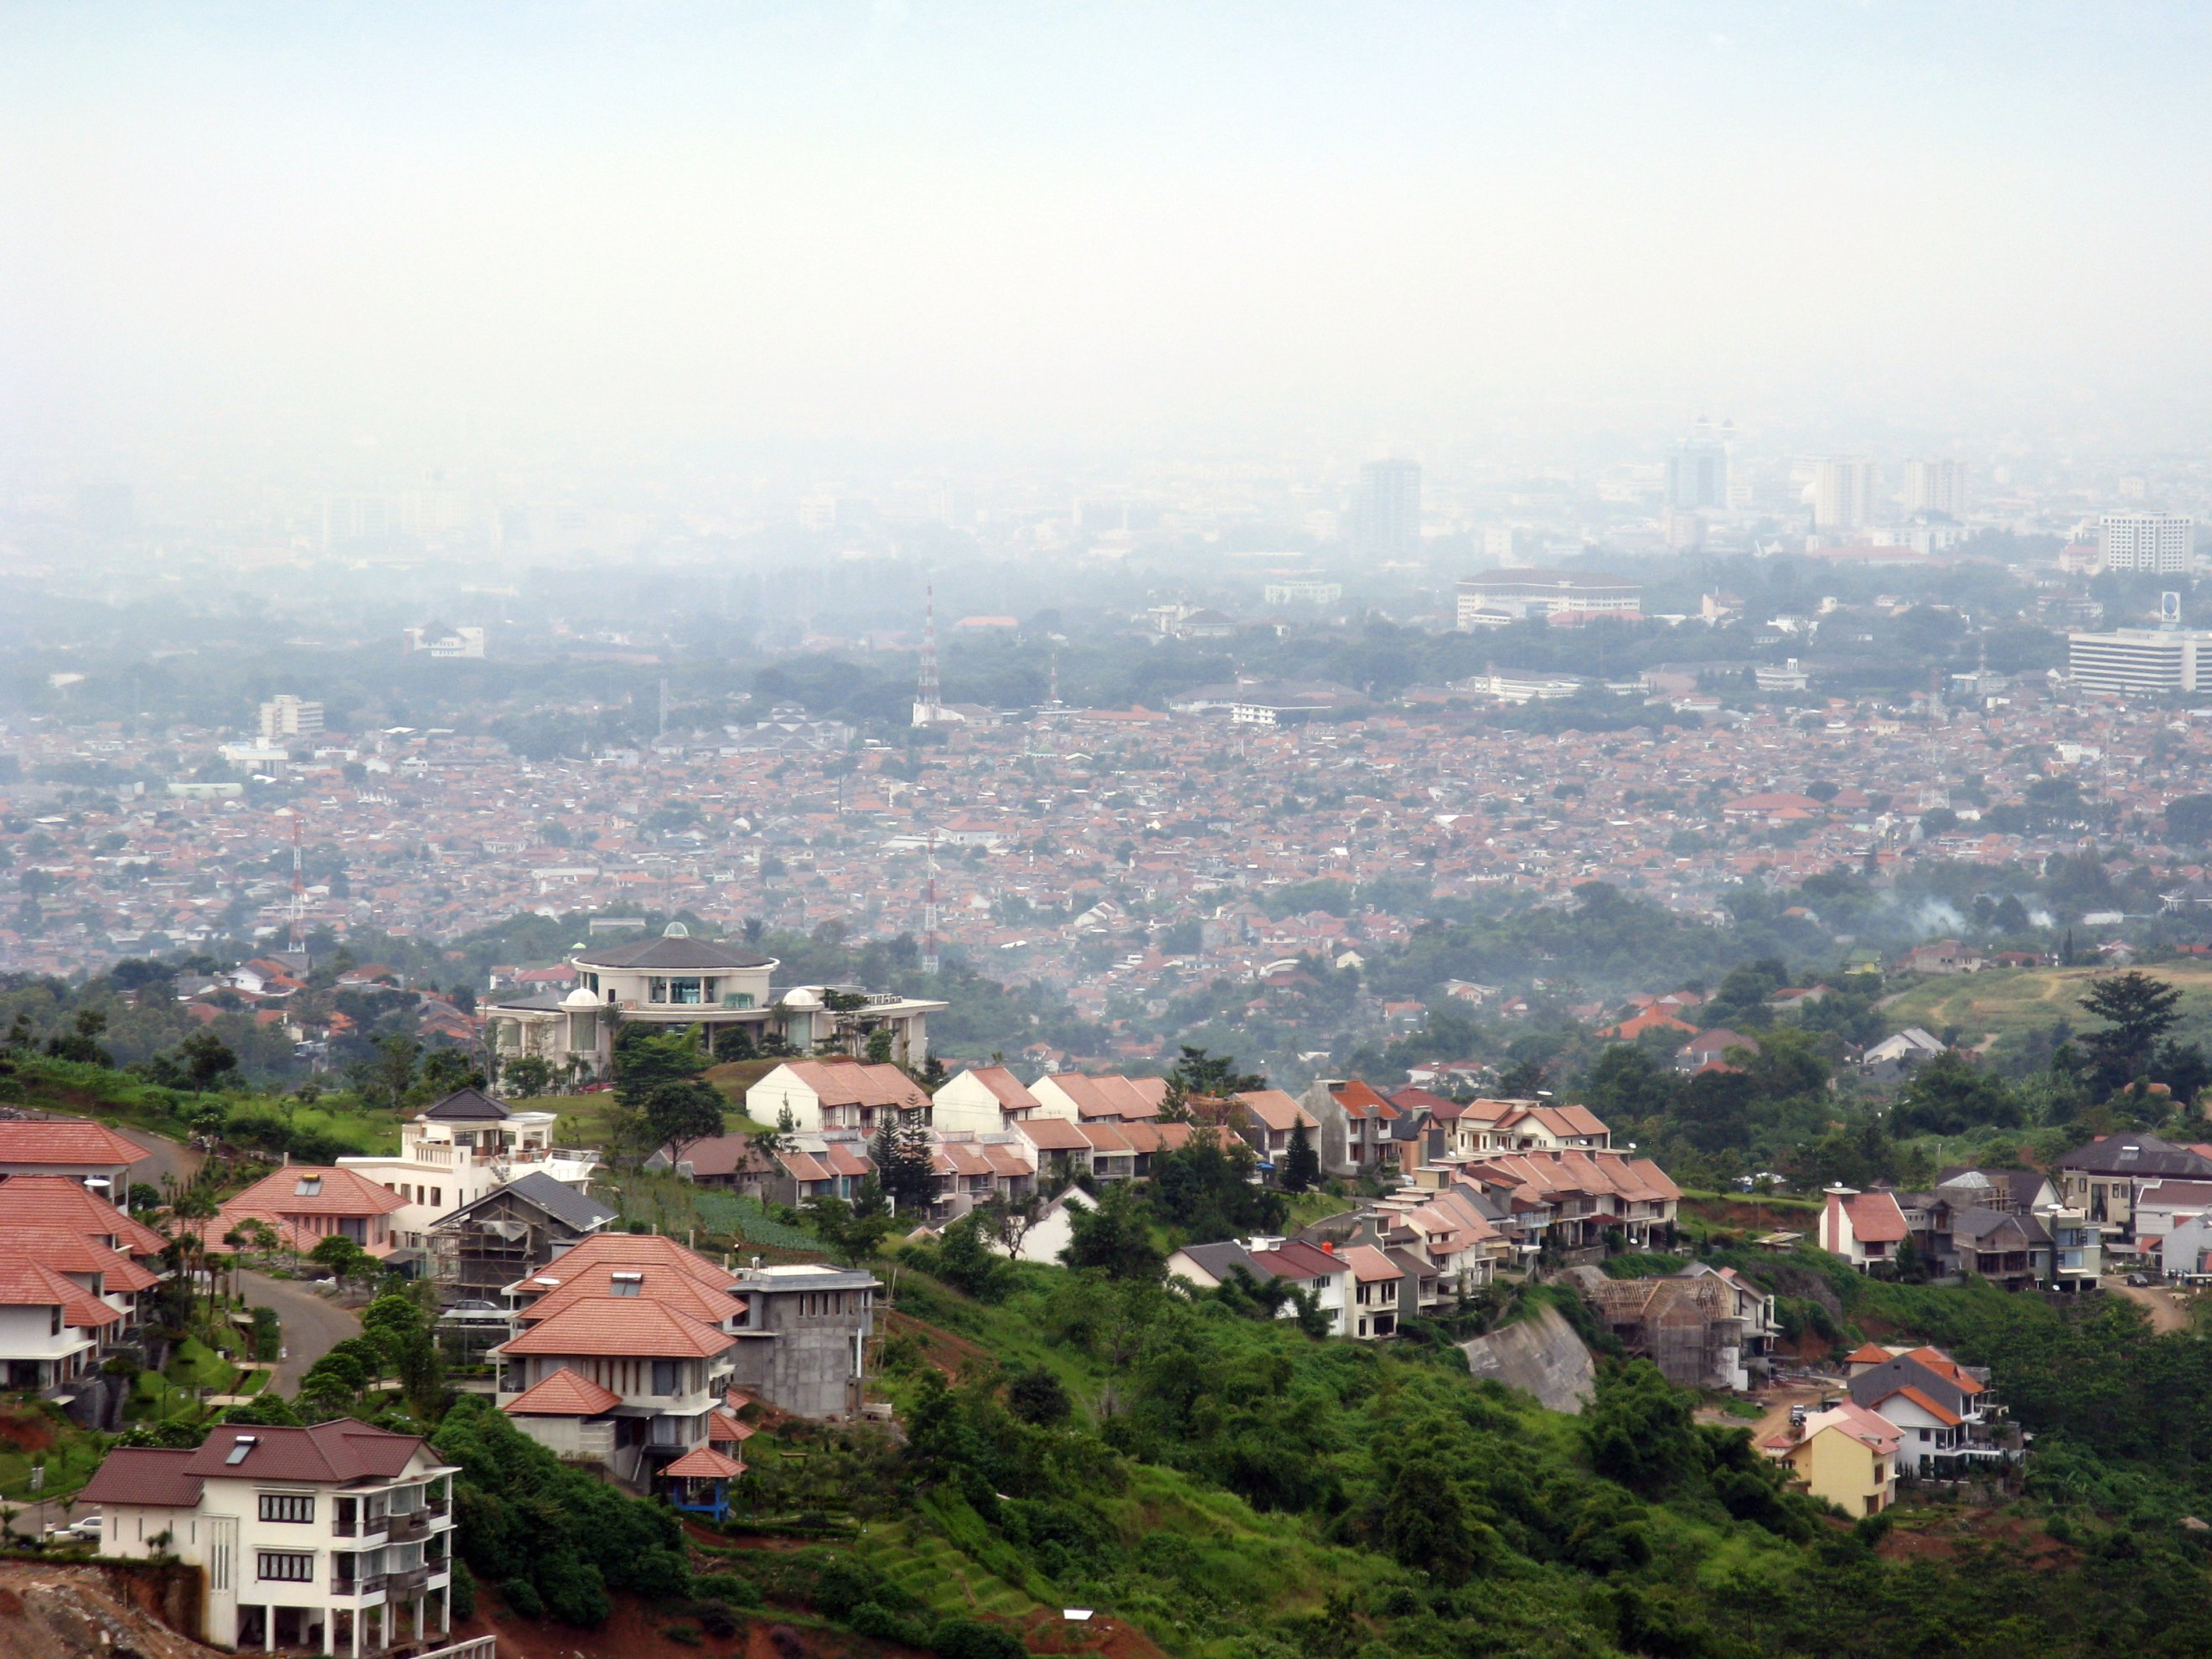 Indonesia City Bandung City in Indonesia